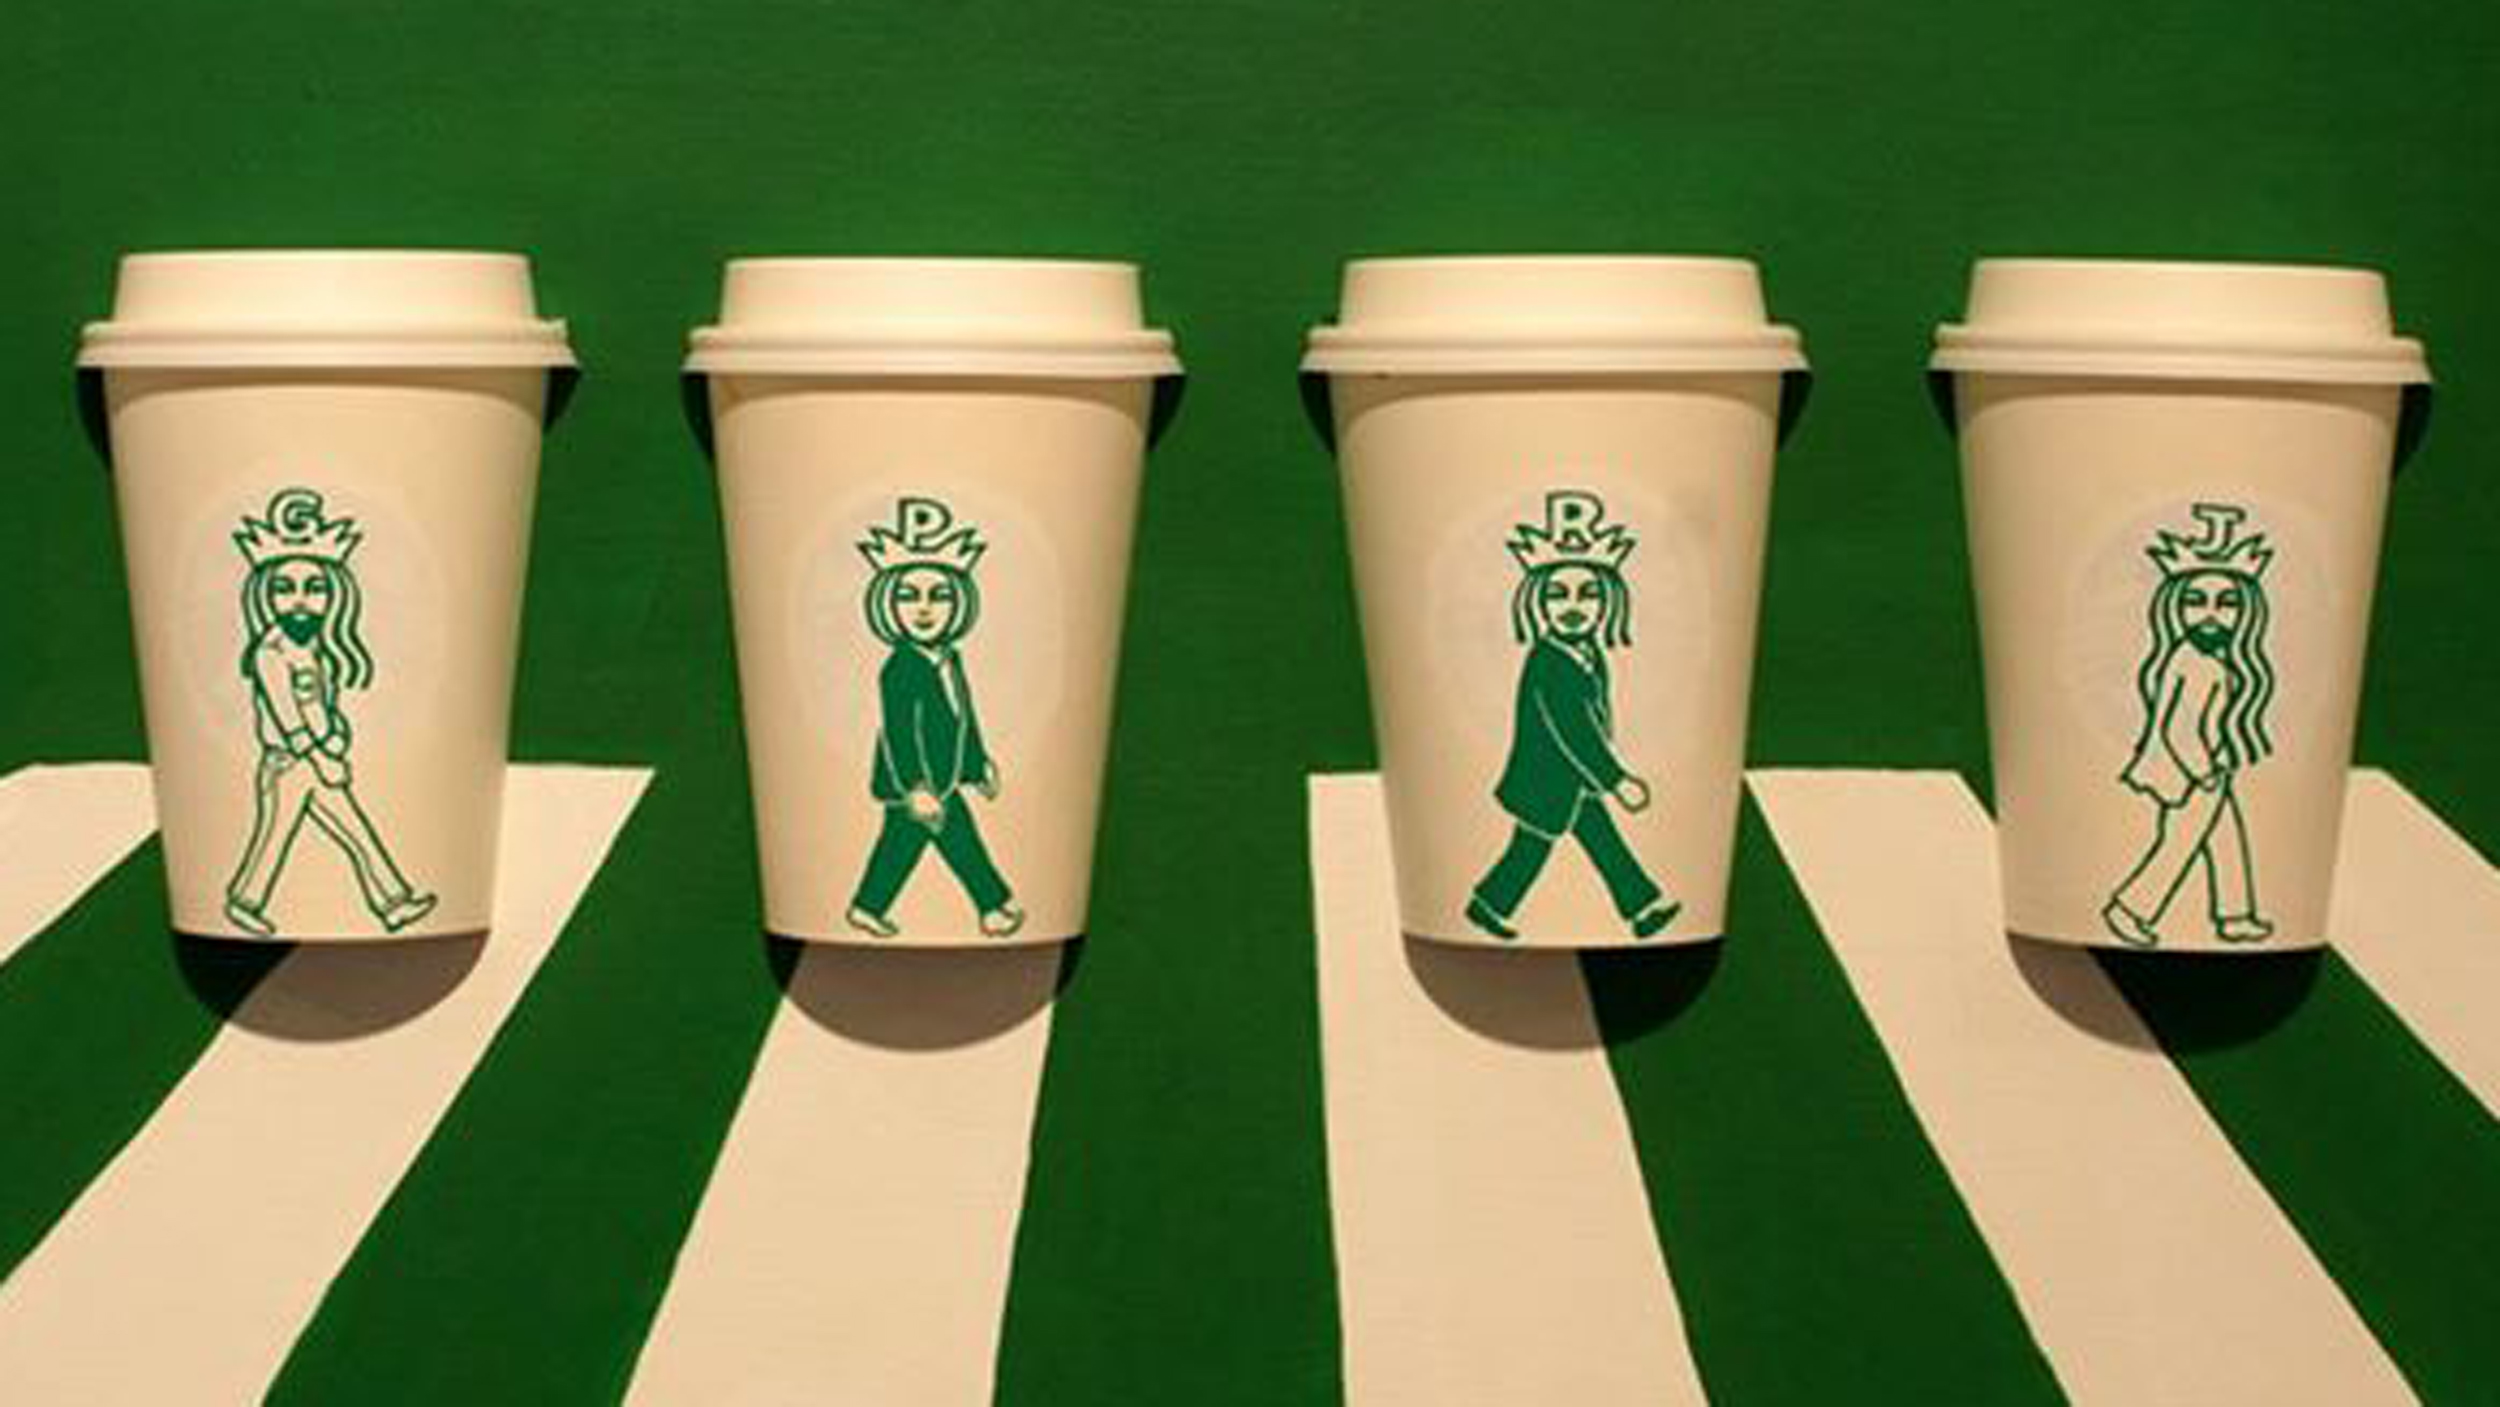 Artist turns Starbucks cups into works of art - TODAY.com